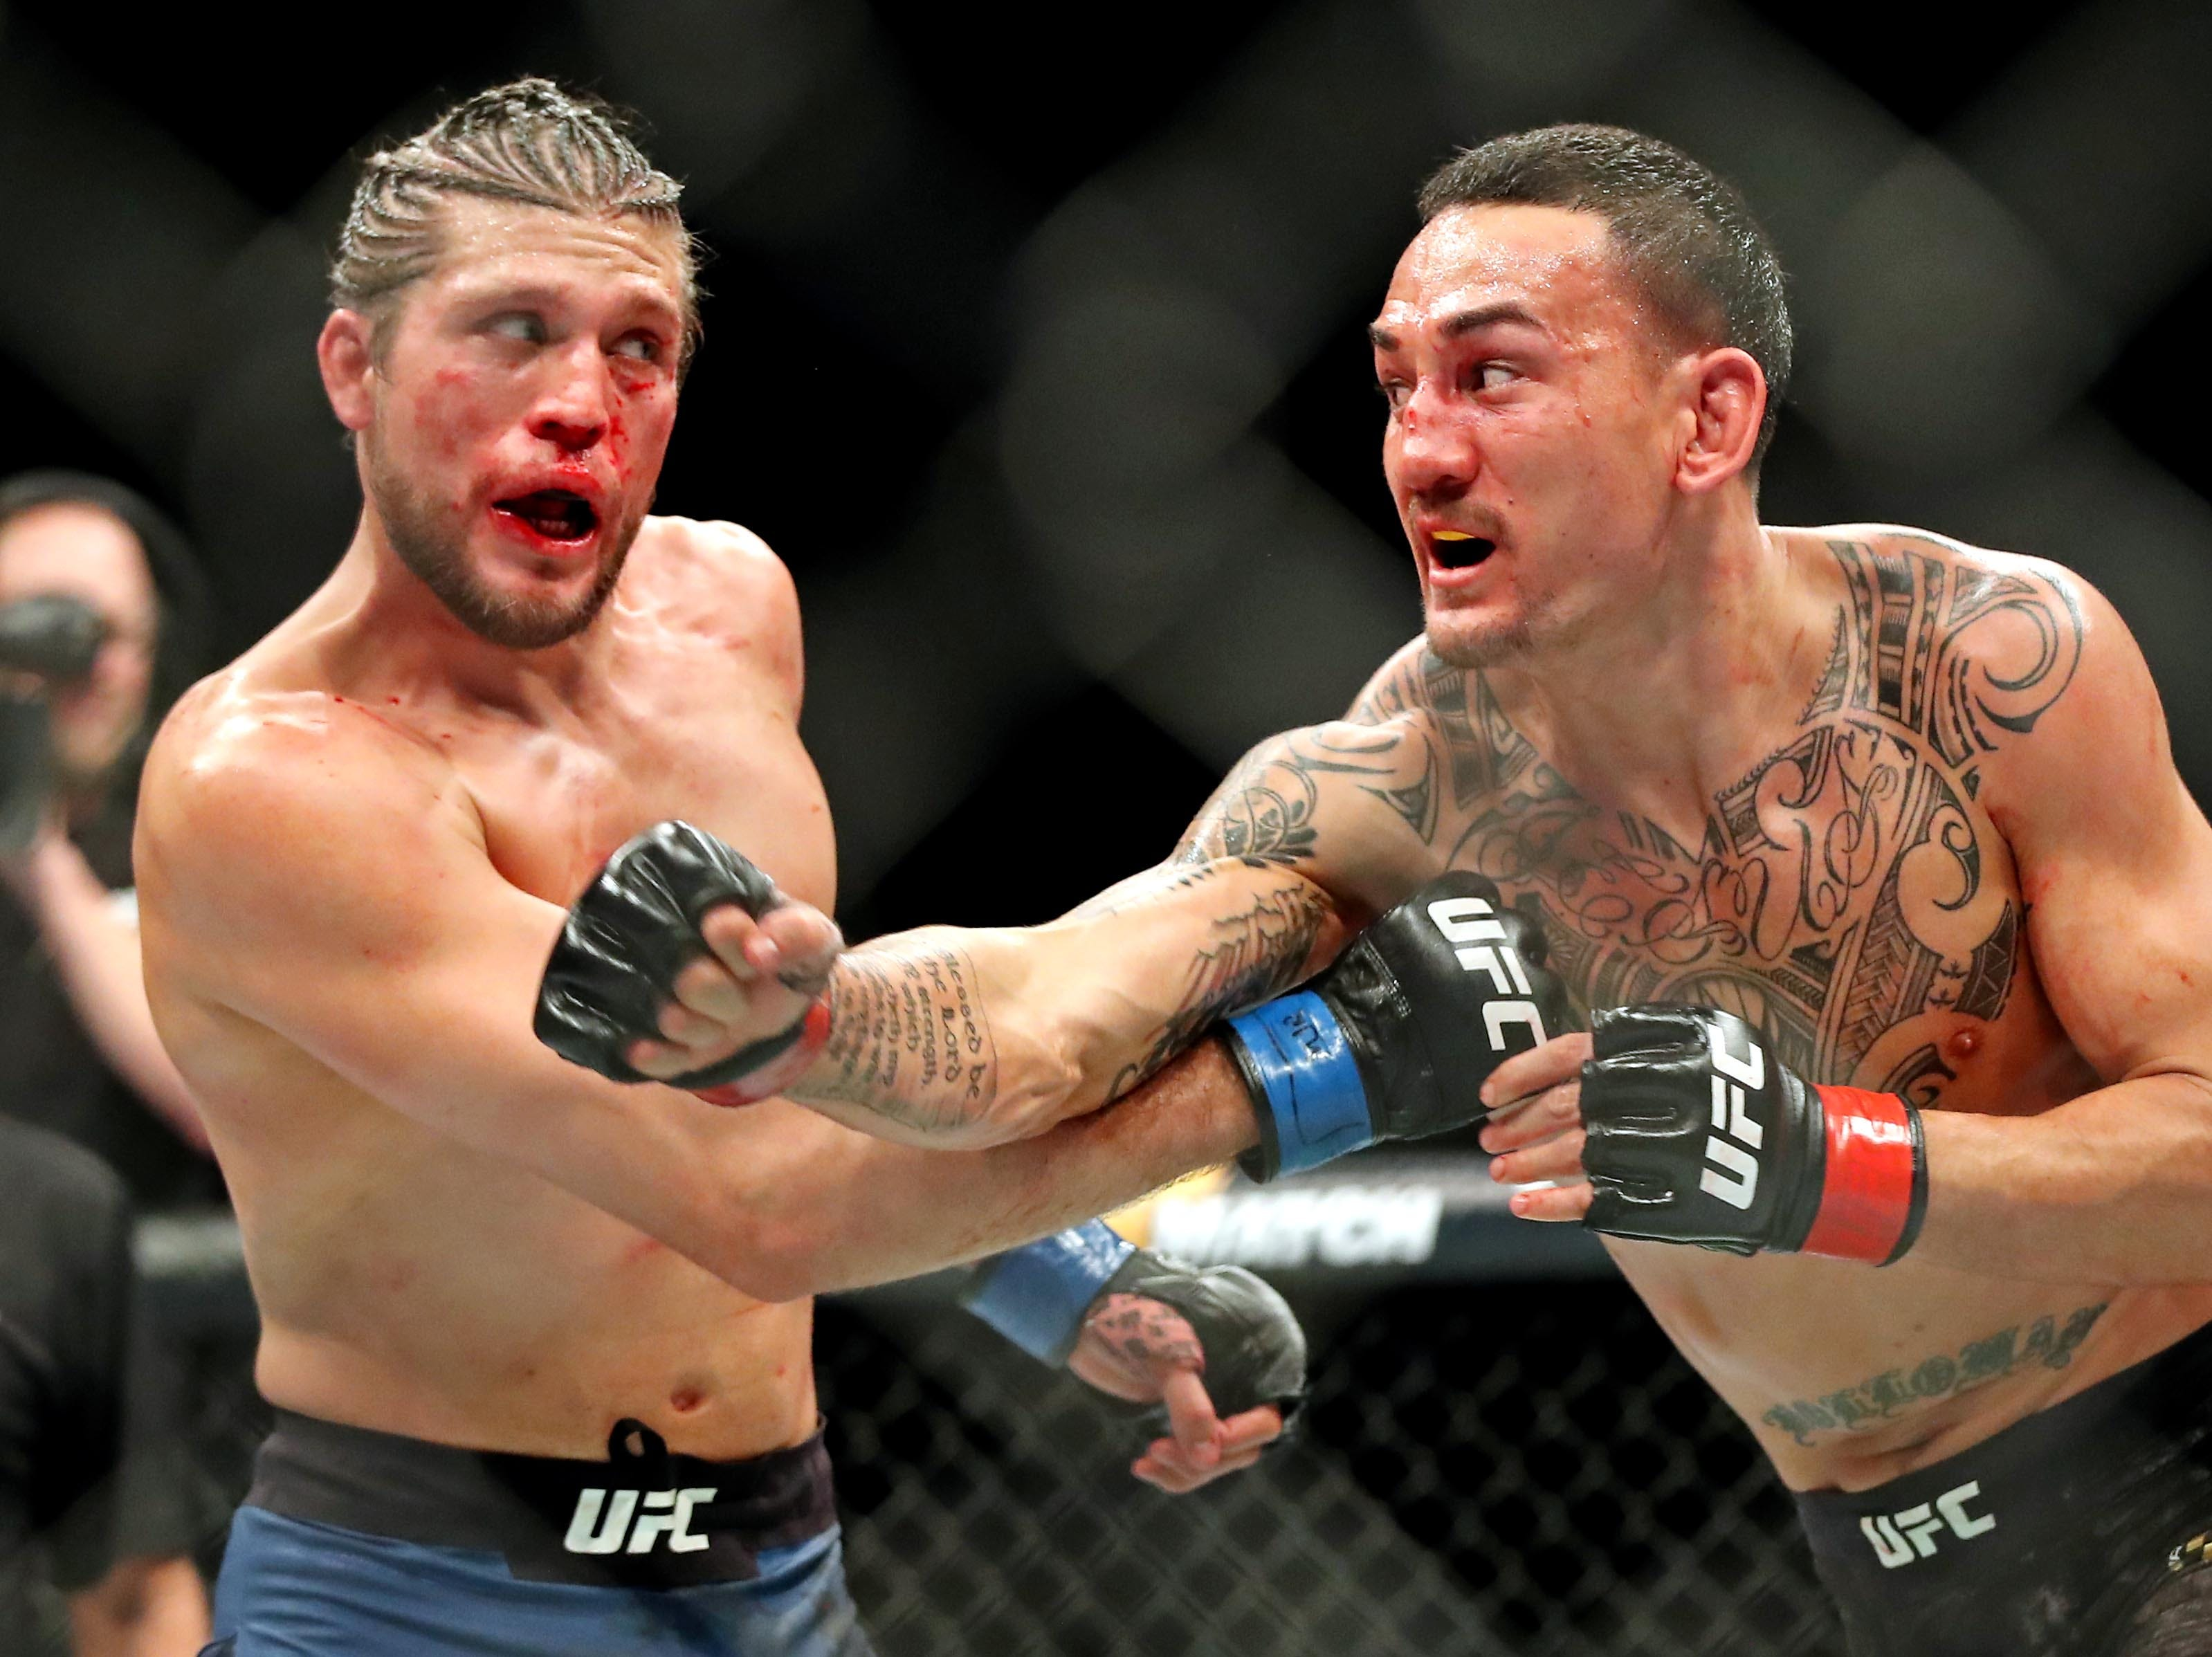 Max Holloway (red gloves) fights Brian Ortega (blue gloves) during UFC 231 at Scotiabank Arena.